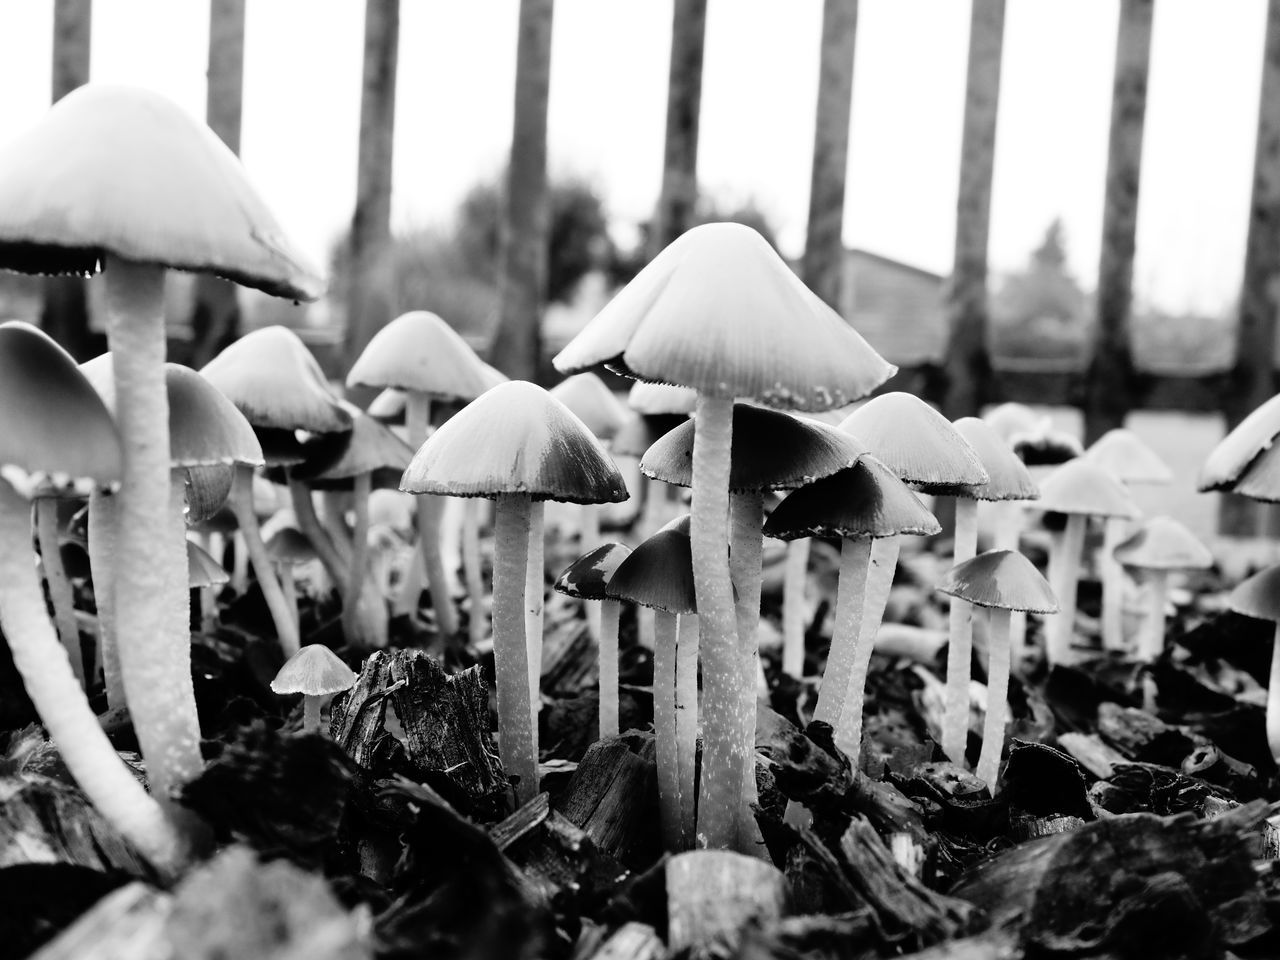 Beauty In Nature Close-up Day Freshness Mushroom Mushrooms Mushrooms Army Nature No People Outdoors